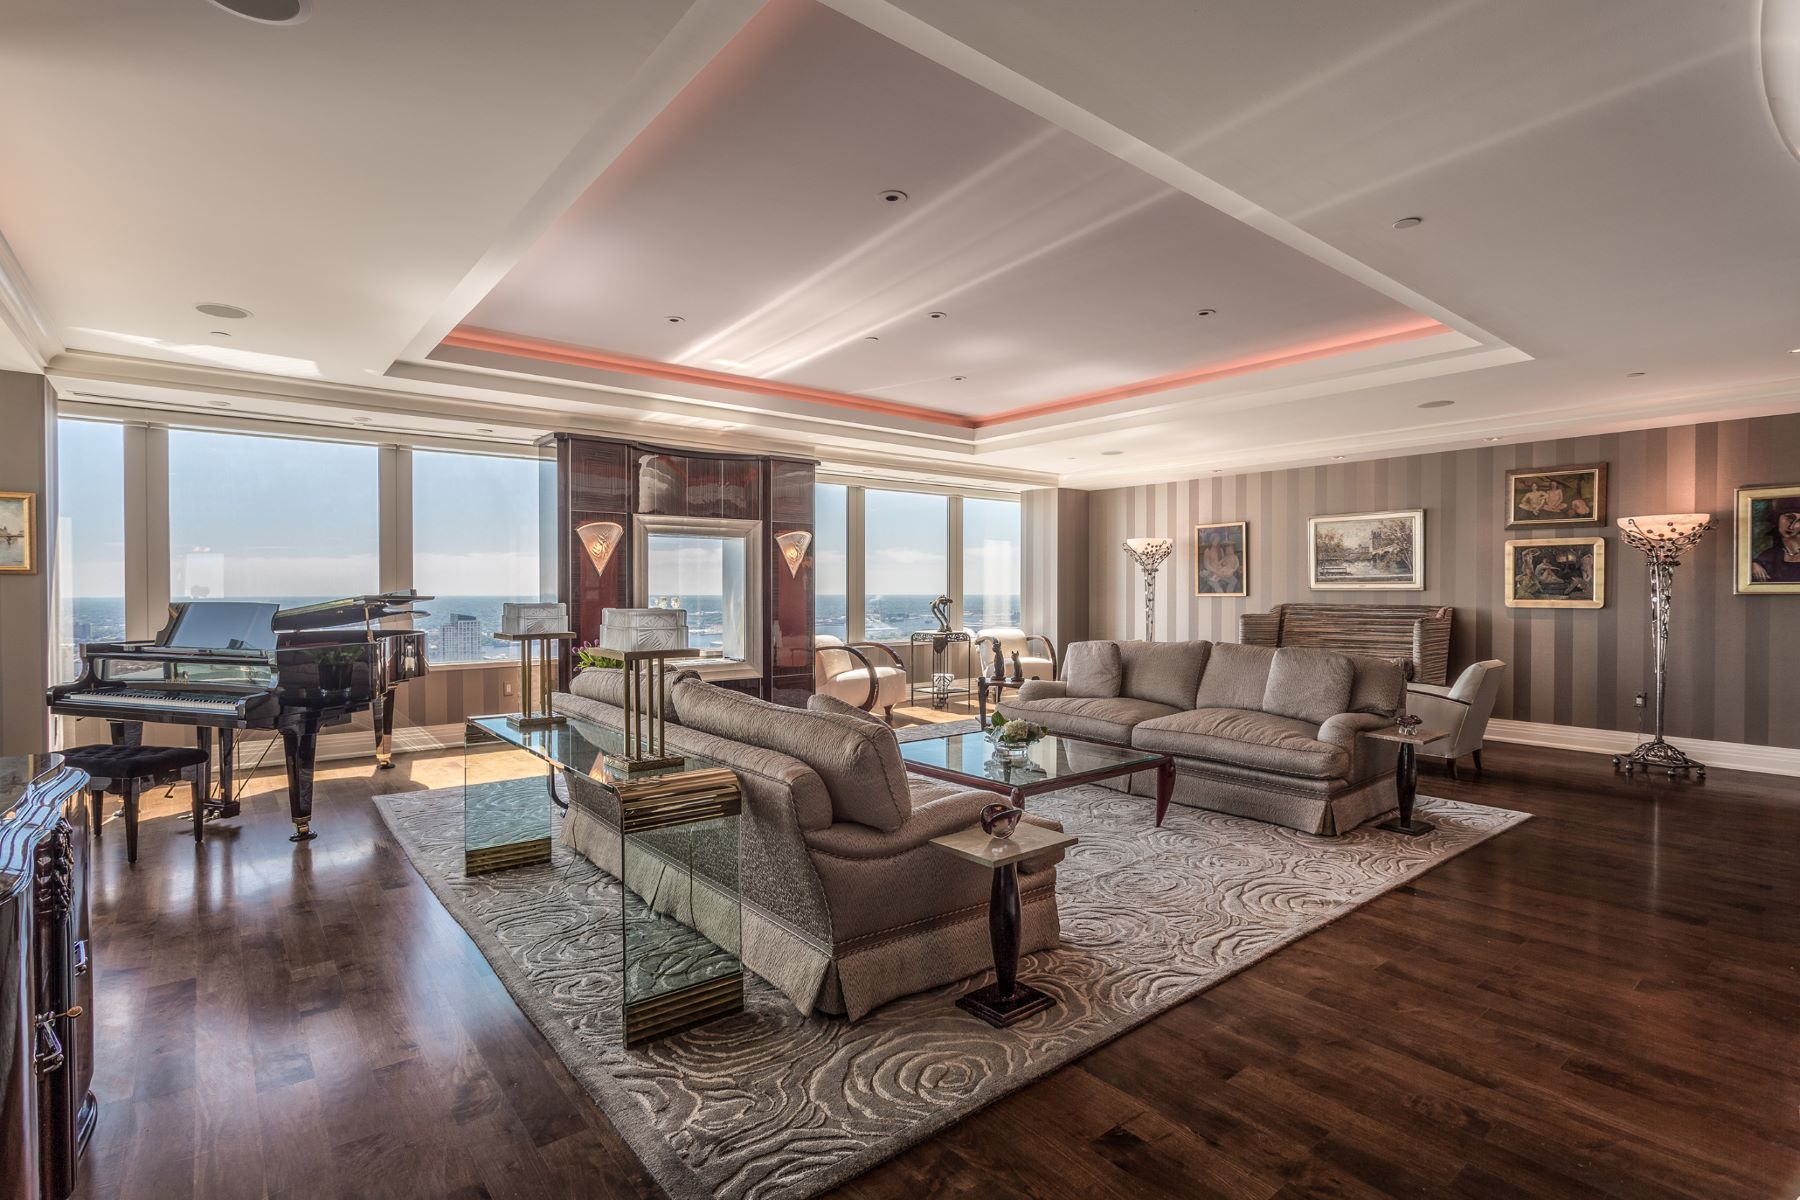 Additional photo for property listing at Two Liberty Residence 50 S 16TH ST #4604 4604 费城, 宾夕法尼亚州 19102 美国